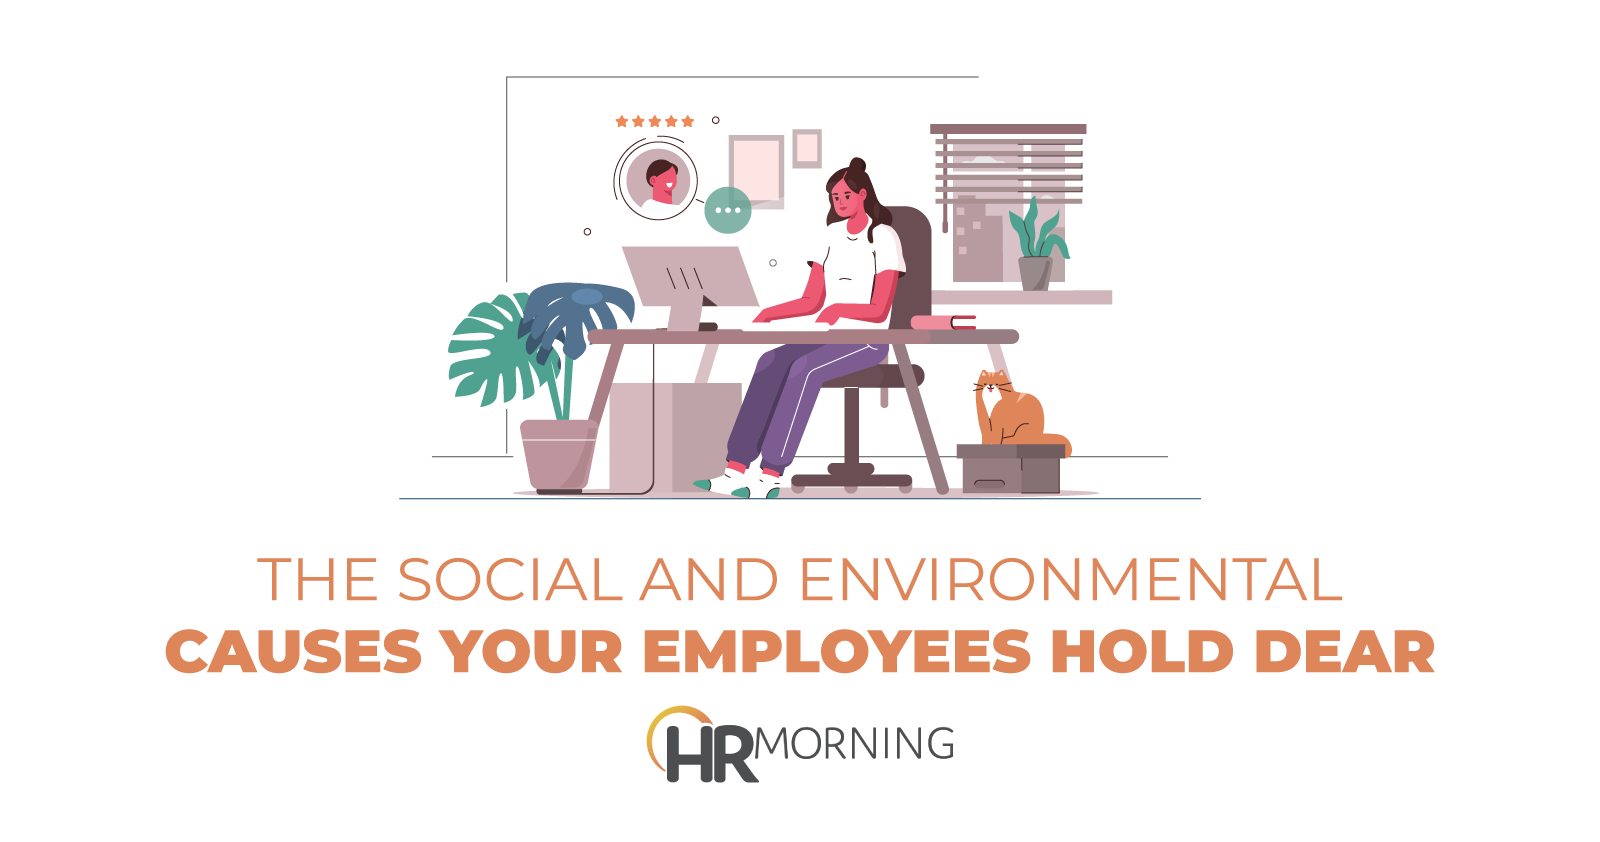 The Social And Environmental Causes Your Employees Hold Dear